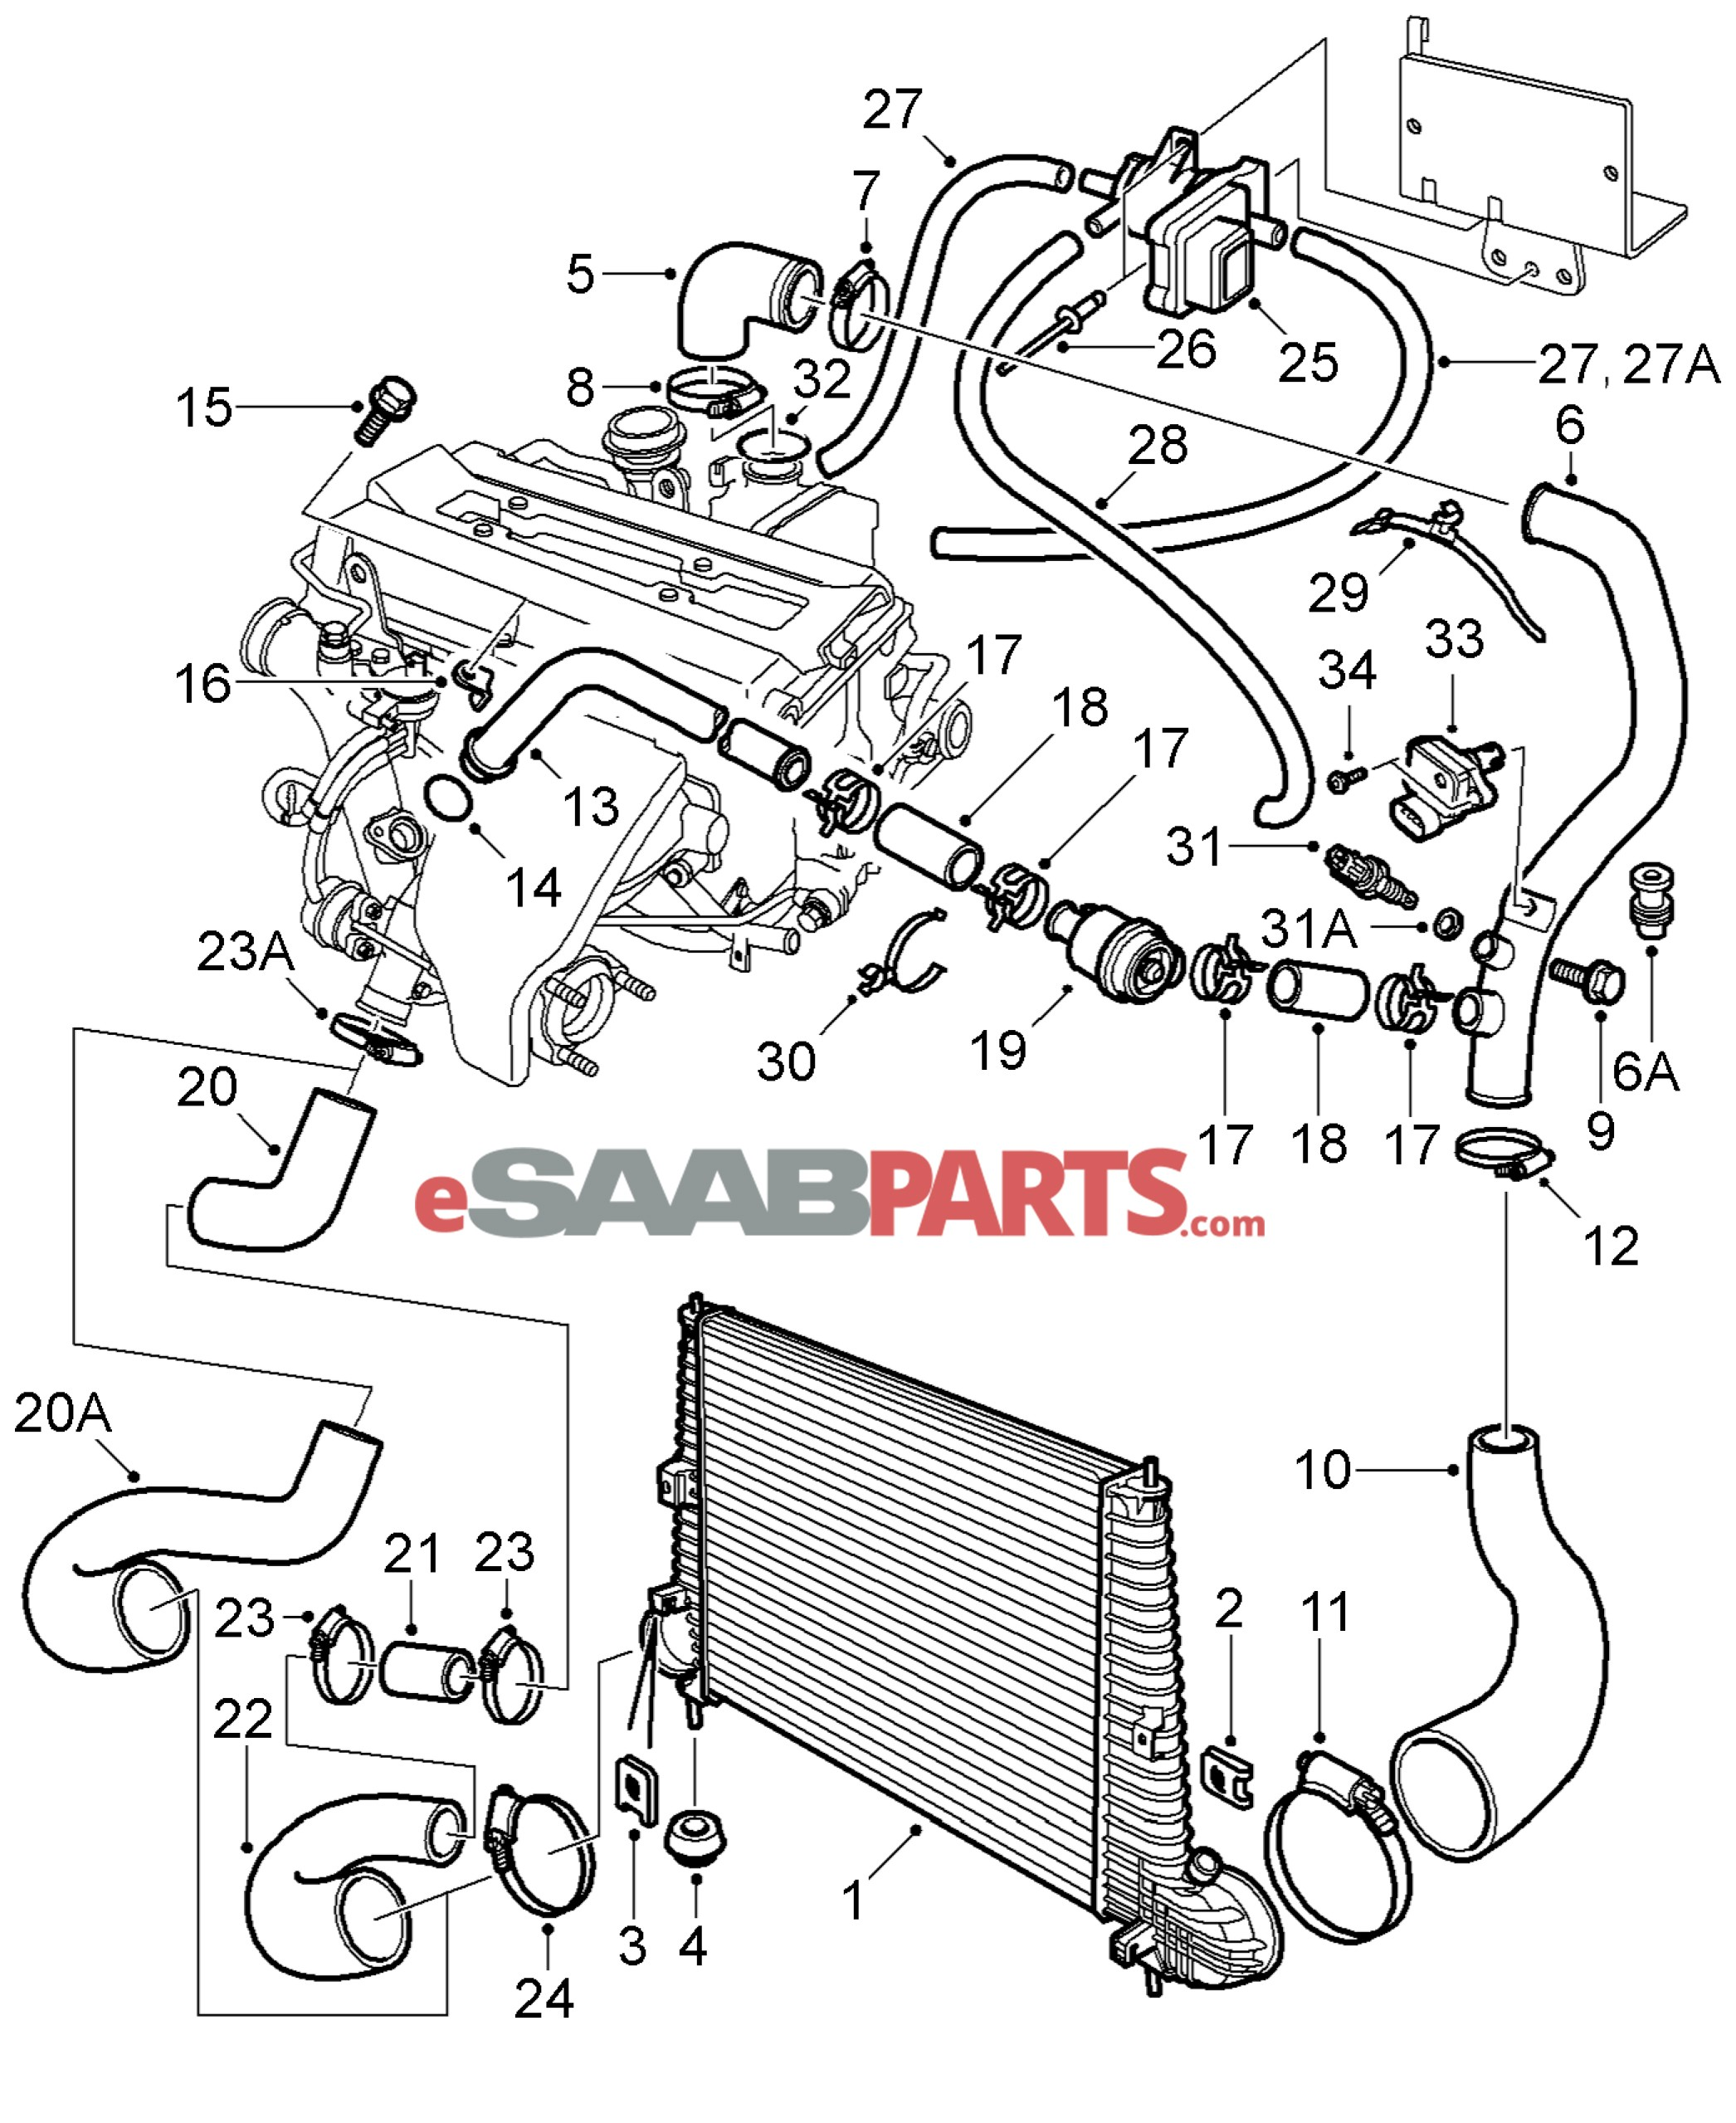 Saab 9 5 Aero 2001 Radio Wiring Diagram Trusted Diagrams Saturn L200 Wiper Radiator Services U2022 Rh Openairpublishing Com Chevrolet Trailblazer